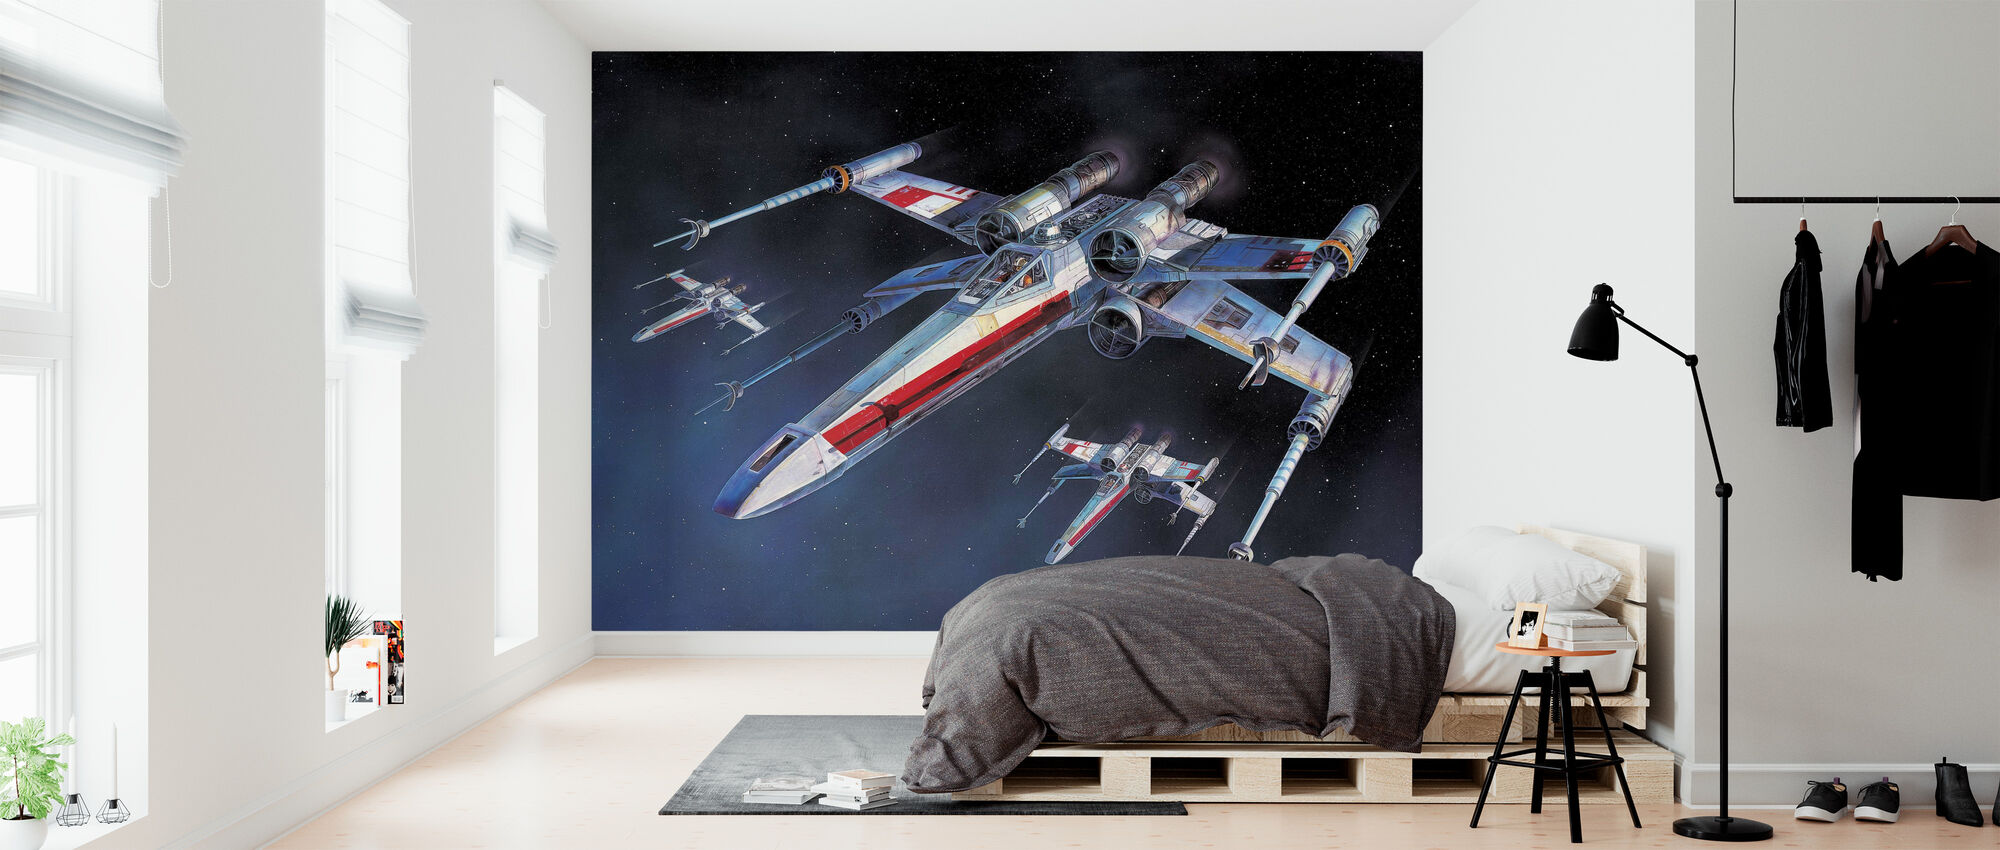 Star Wars - X-wing Starfighters - Tapet - Sovrum